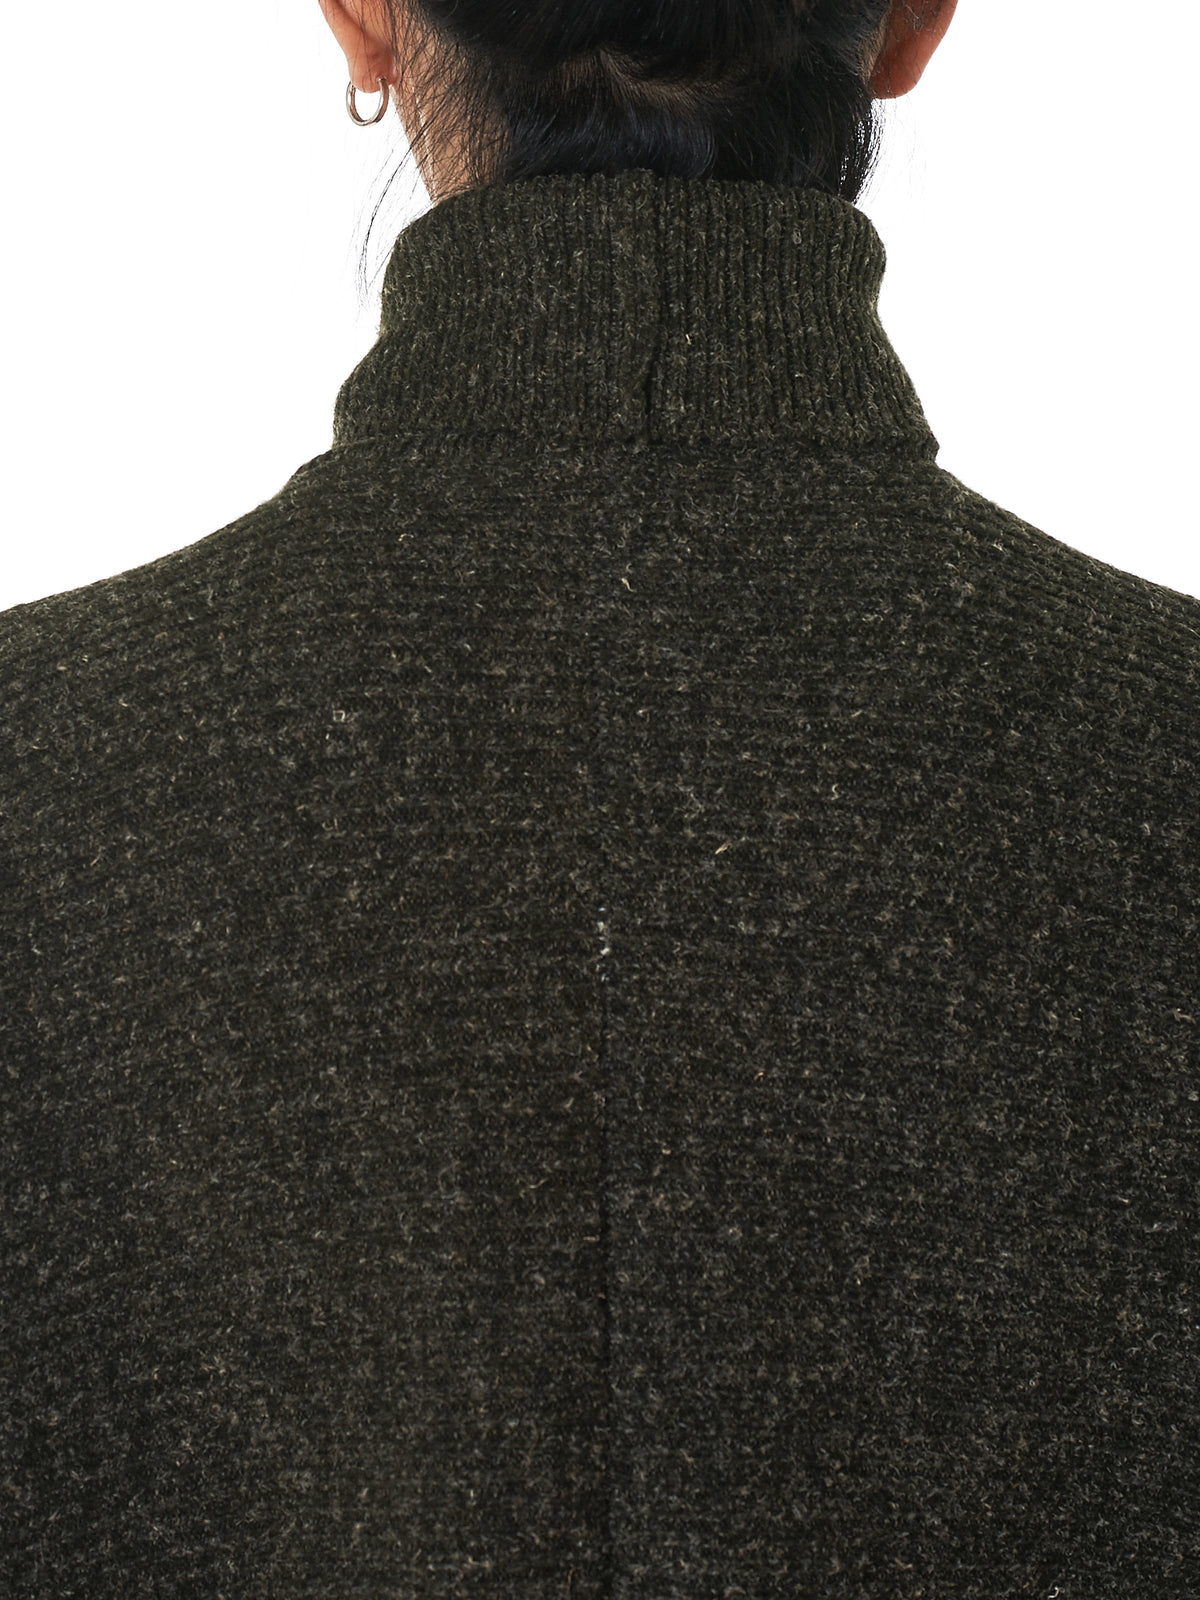 Jan-Jan Van Essche Sweater - Hlorenzo Detail 2